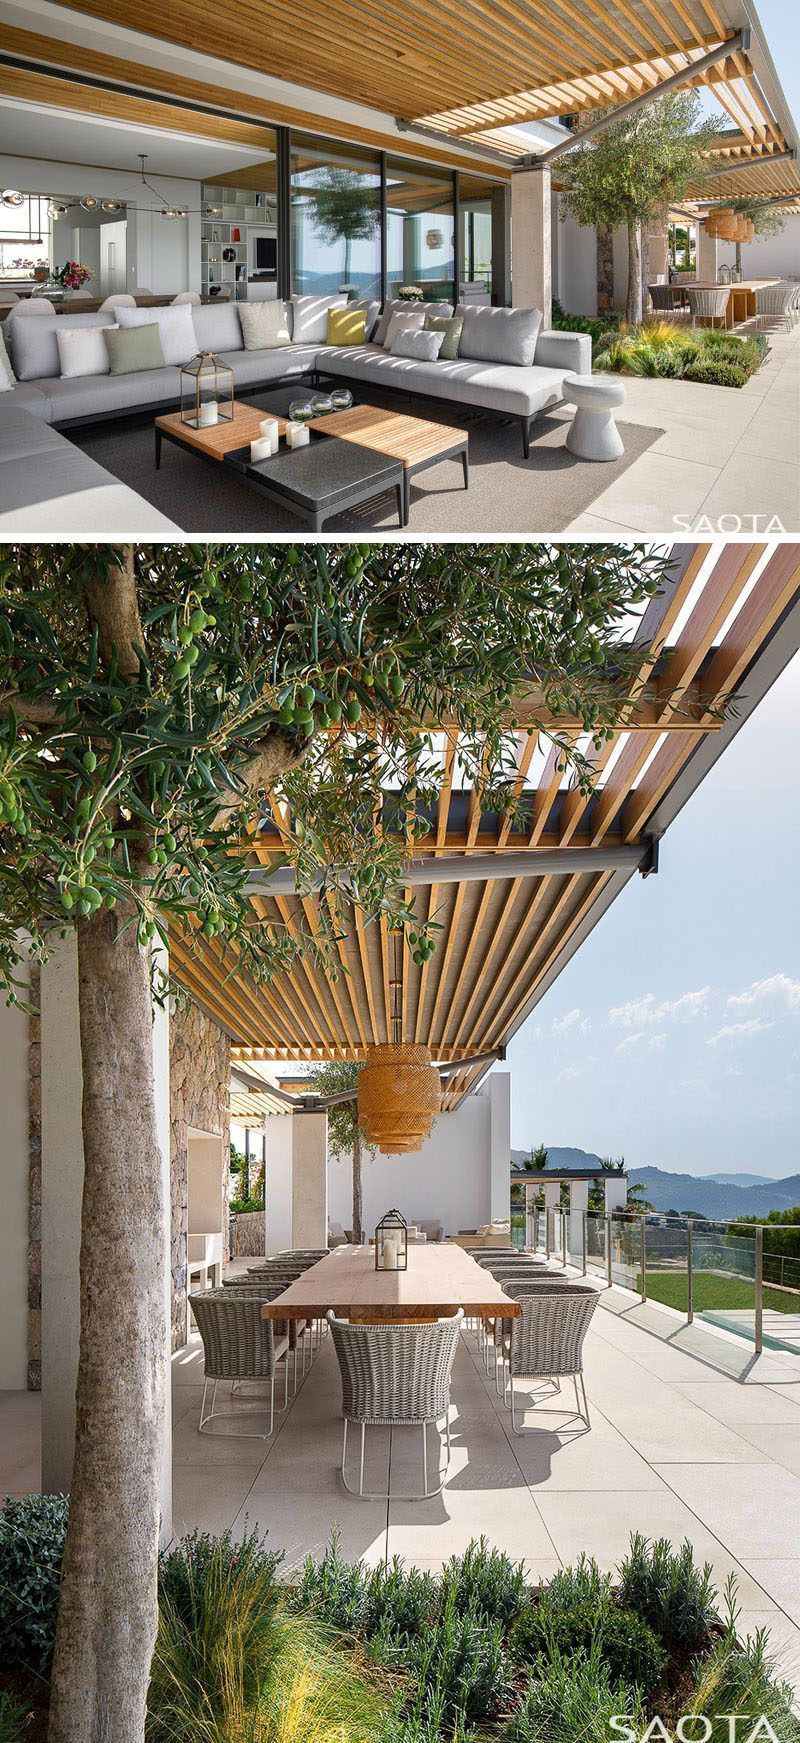 SAOTA Have Recently pleted Their First House In Mallorca Spain